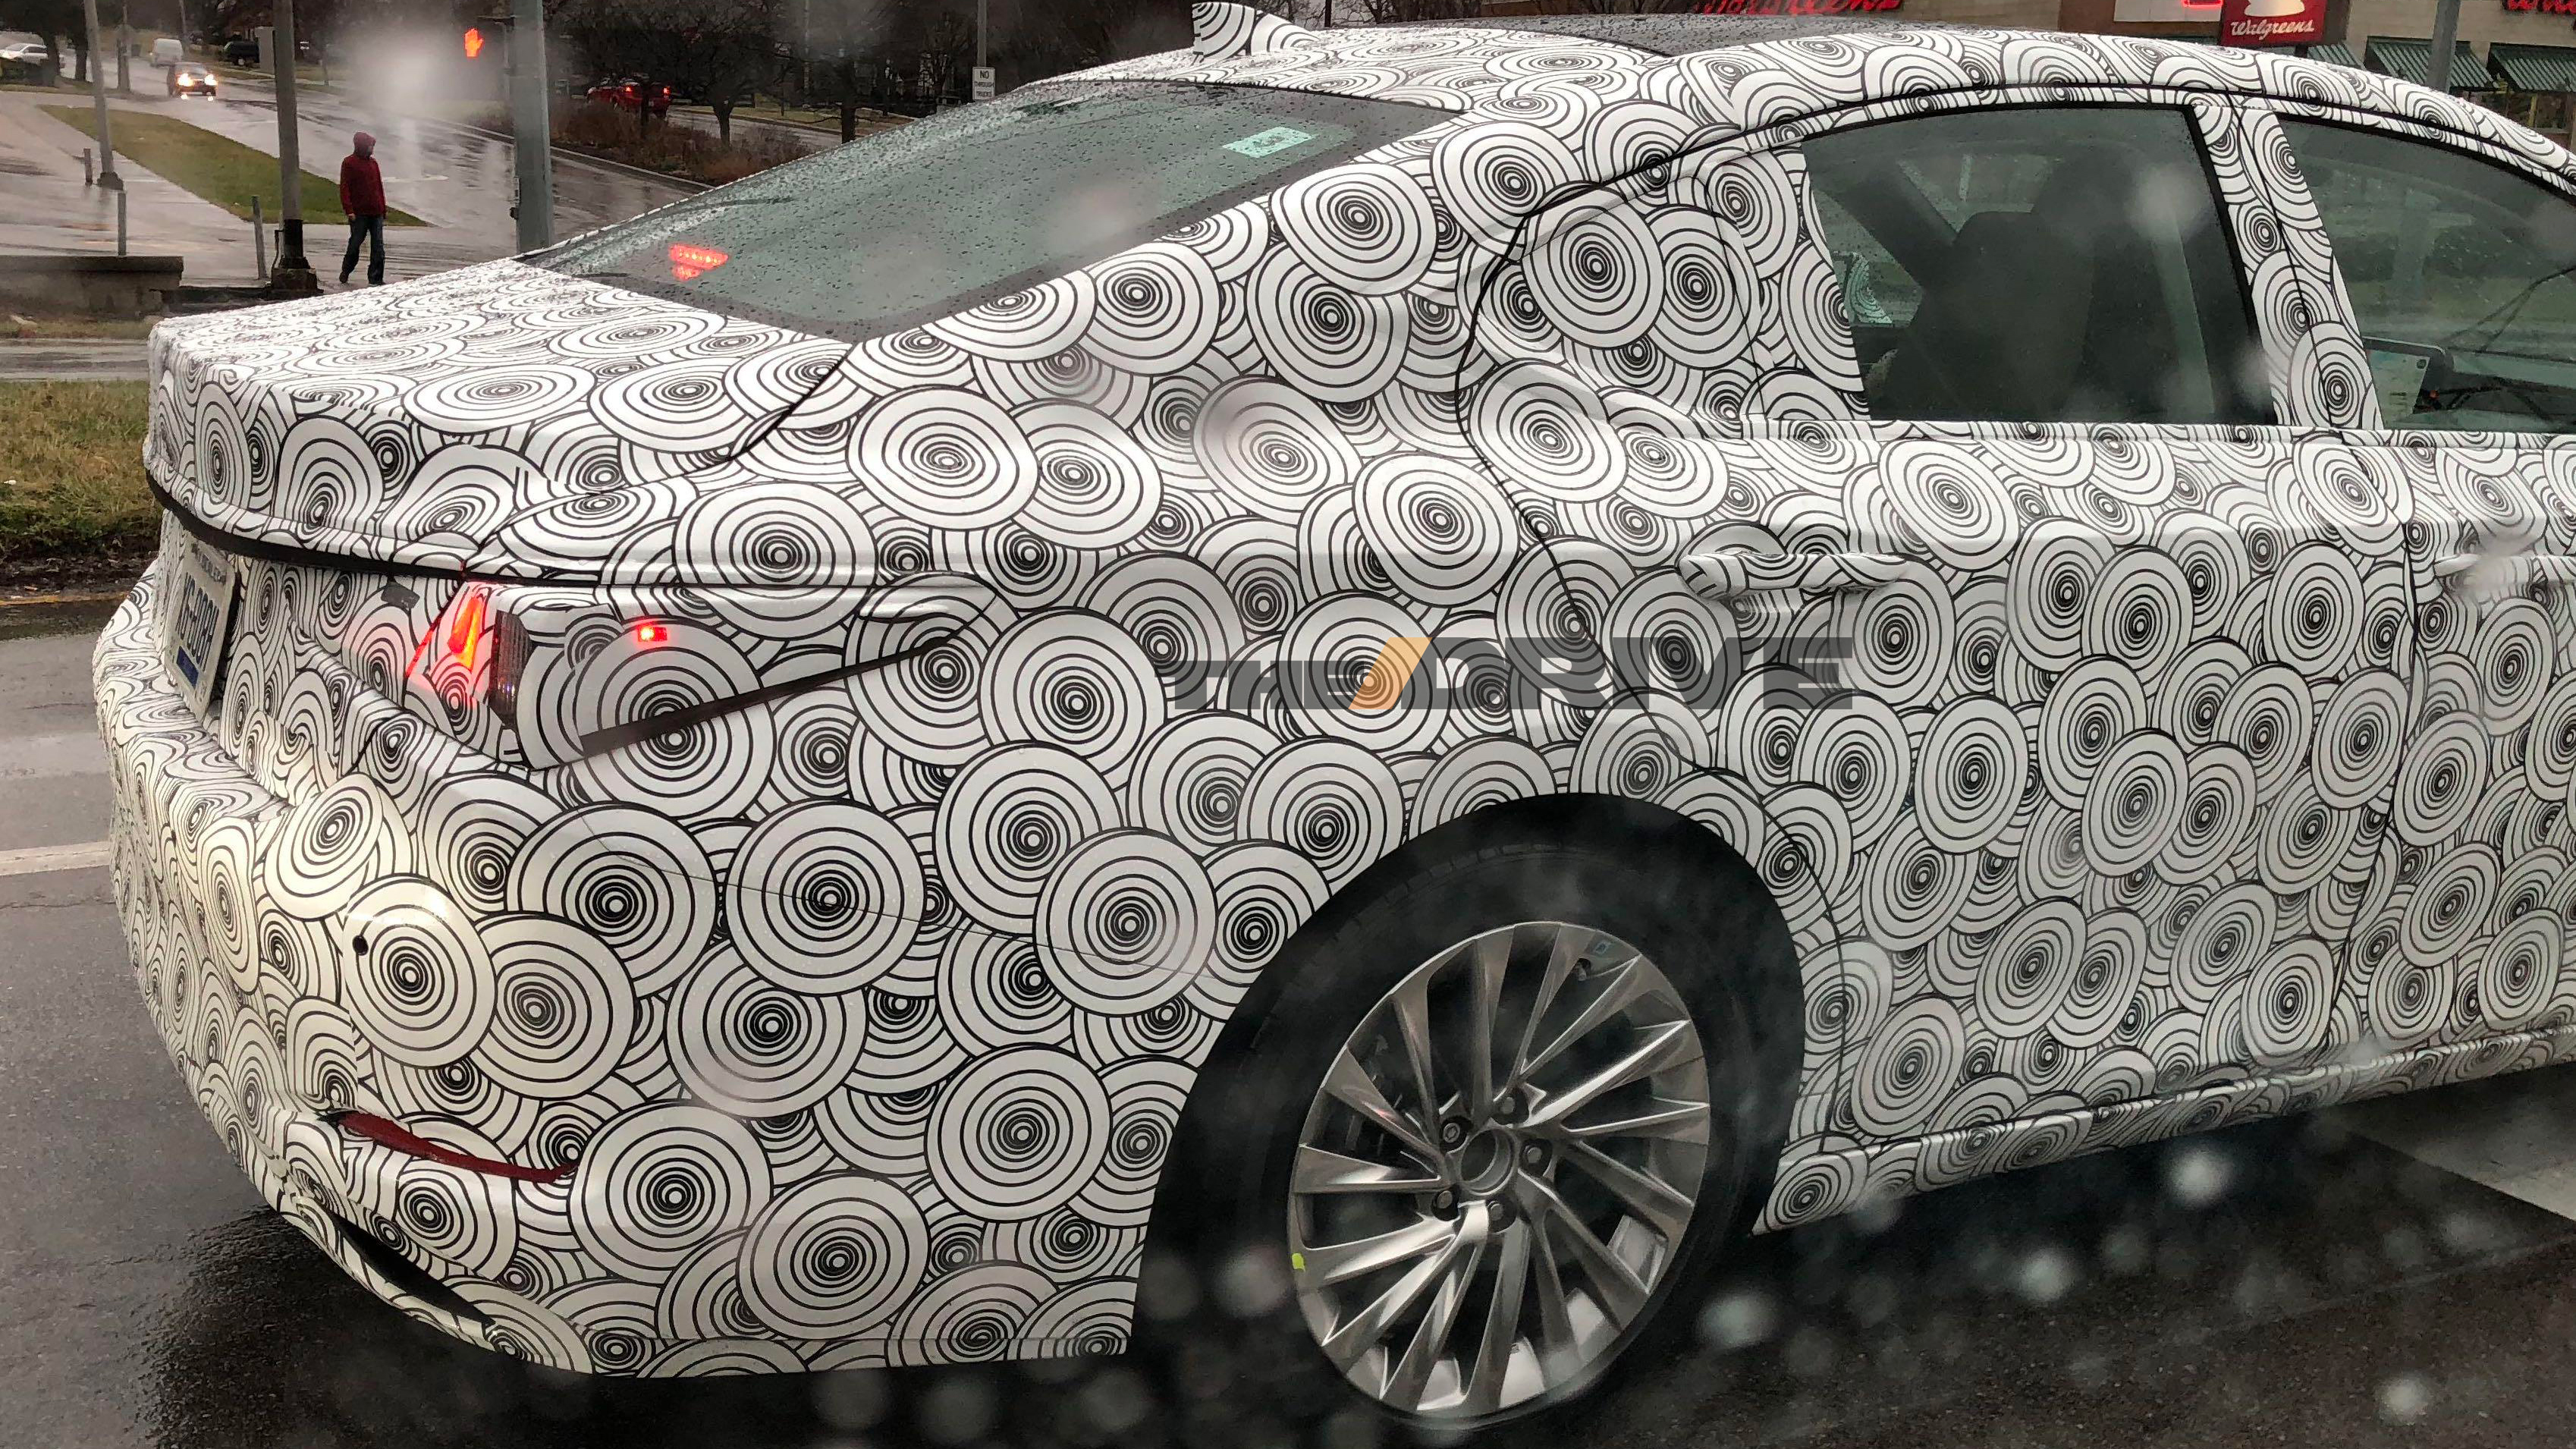 2019 Lexus ES Caught Testing in Kentucky - The Drive